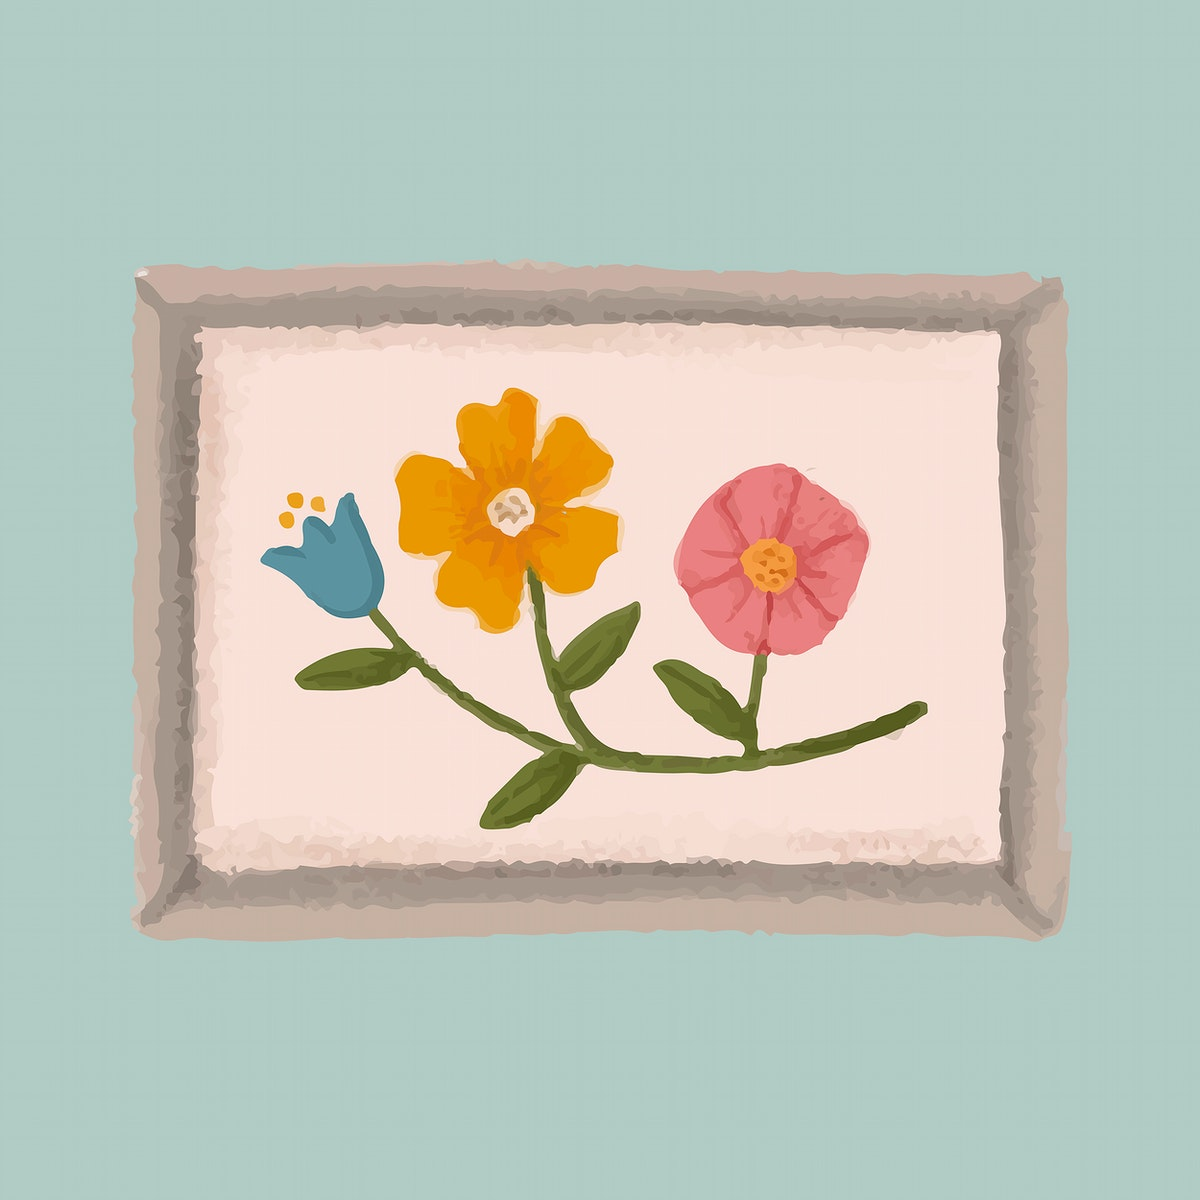 Picture frame of flowers on a blue wall sketch style vector